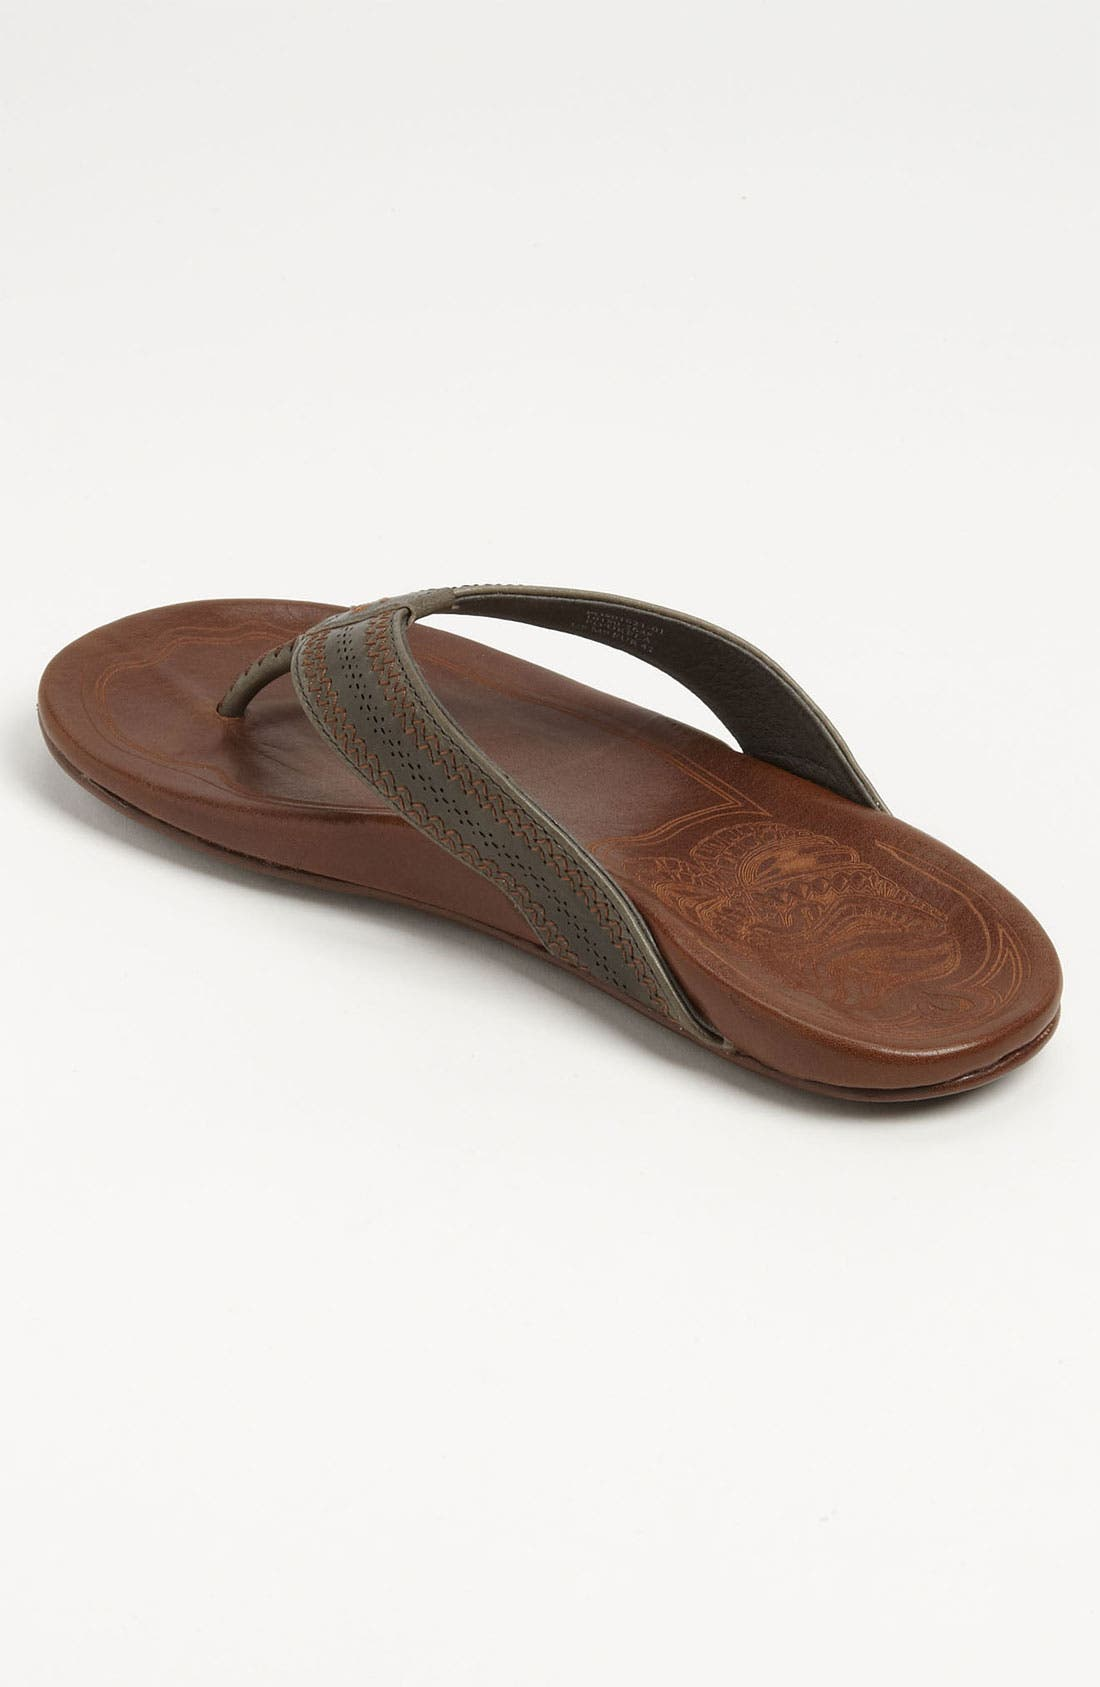 Alternate Image 2  - OluKai 'Pookela' Flip Flop (Men)